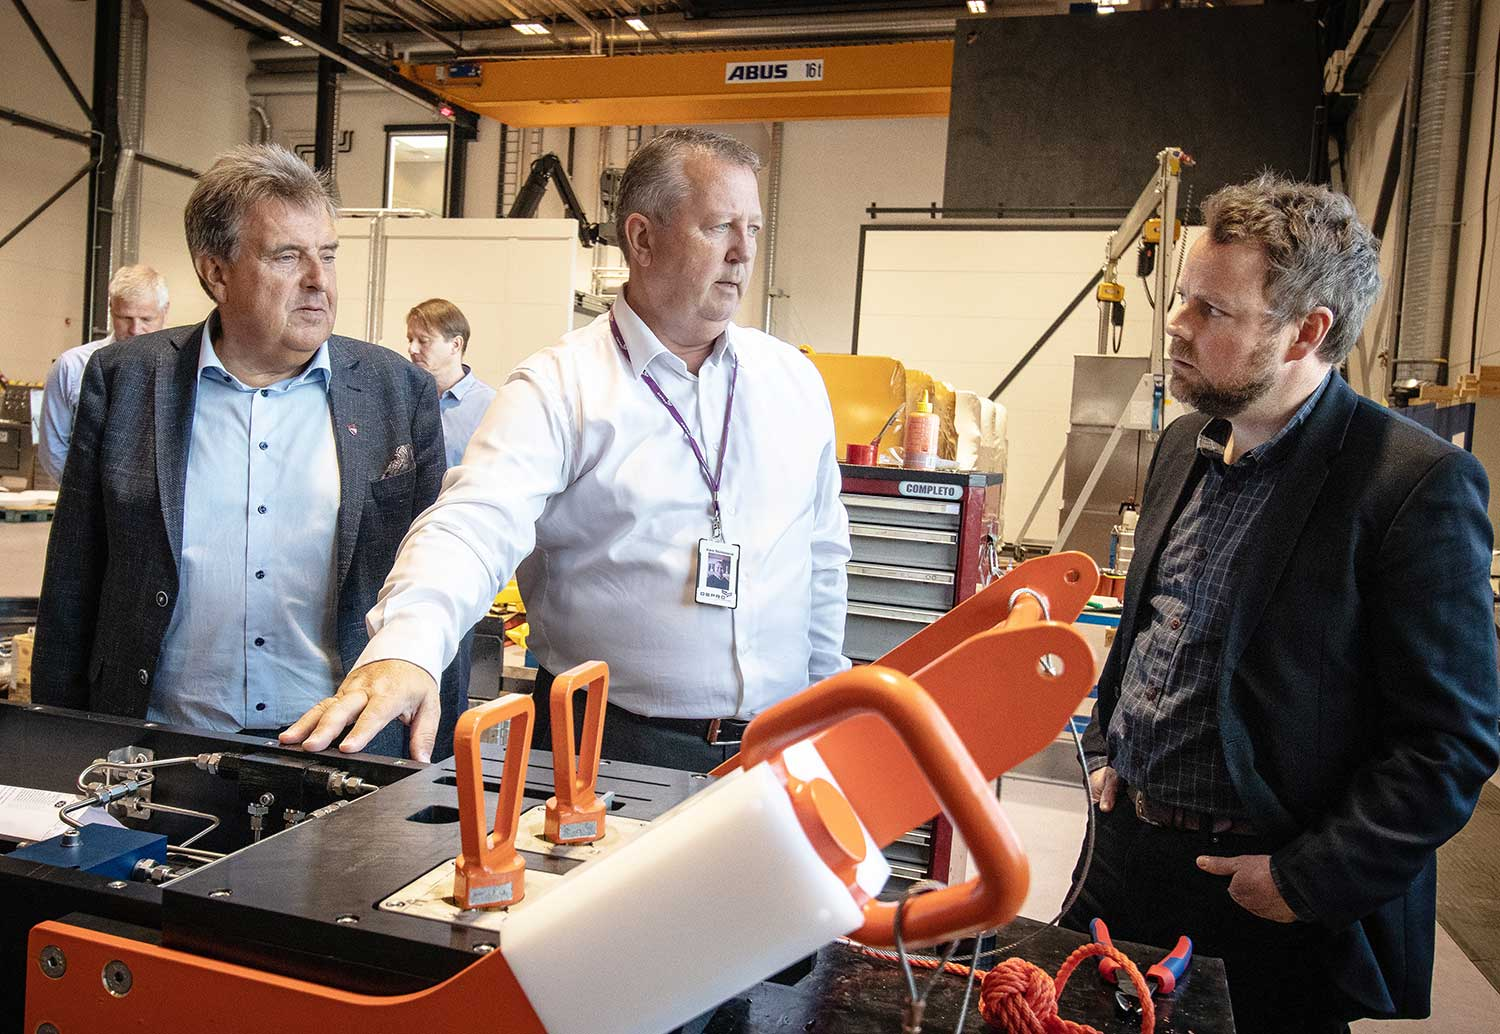 CEO at Depro AS, Kåre Stokkeland shows Minister of Trade, Torbjørn Røe Isaksen, around in Depros workshop